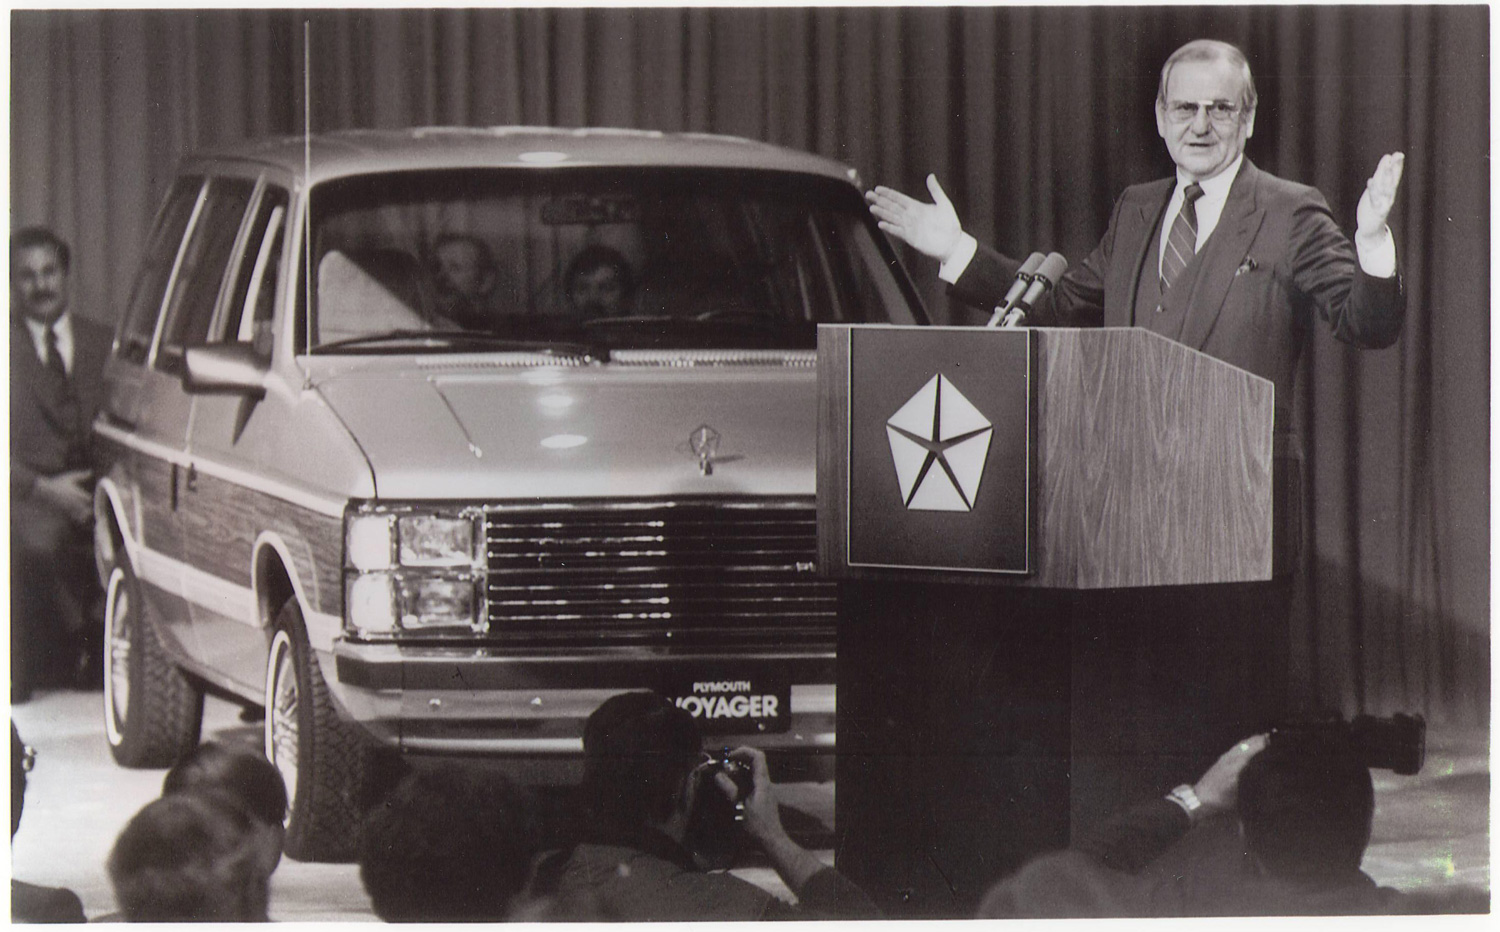 Lee Iacocca unveils the Minivan in 1983